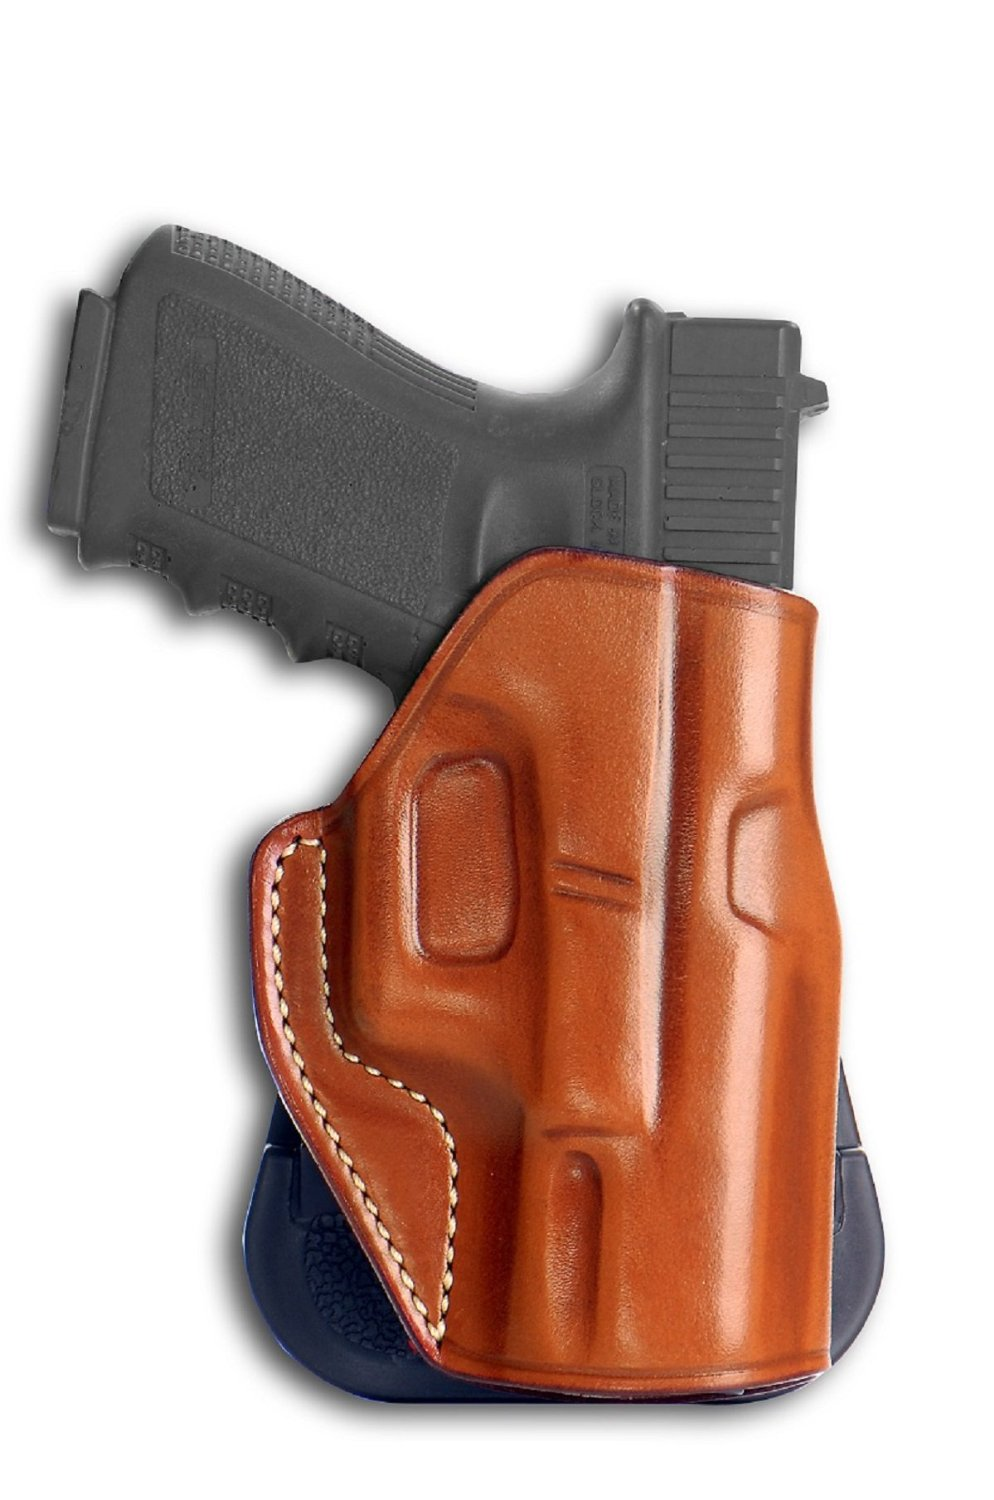 Buy LEATHER PADDLE HOLSTER (OWB) WITH OPEN TOP FOR FAST